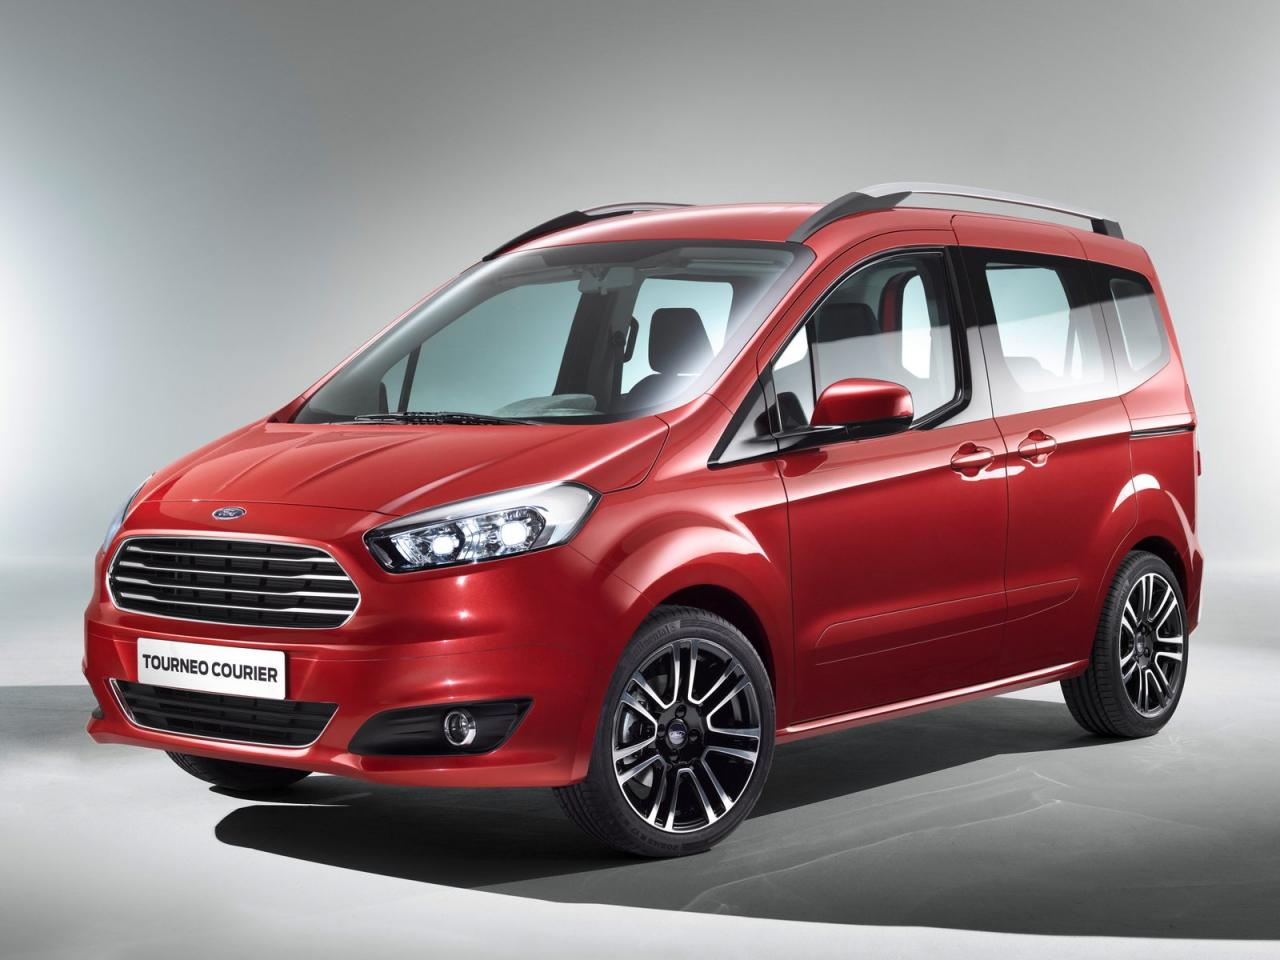 [Resim: Ford+Tourneo+Courier+1.jpg]